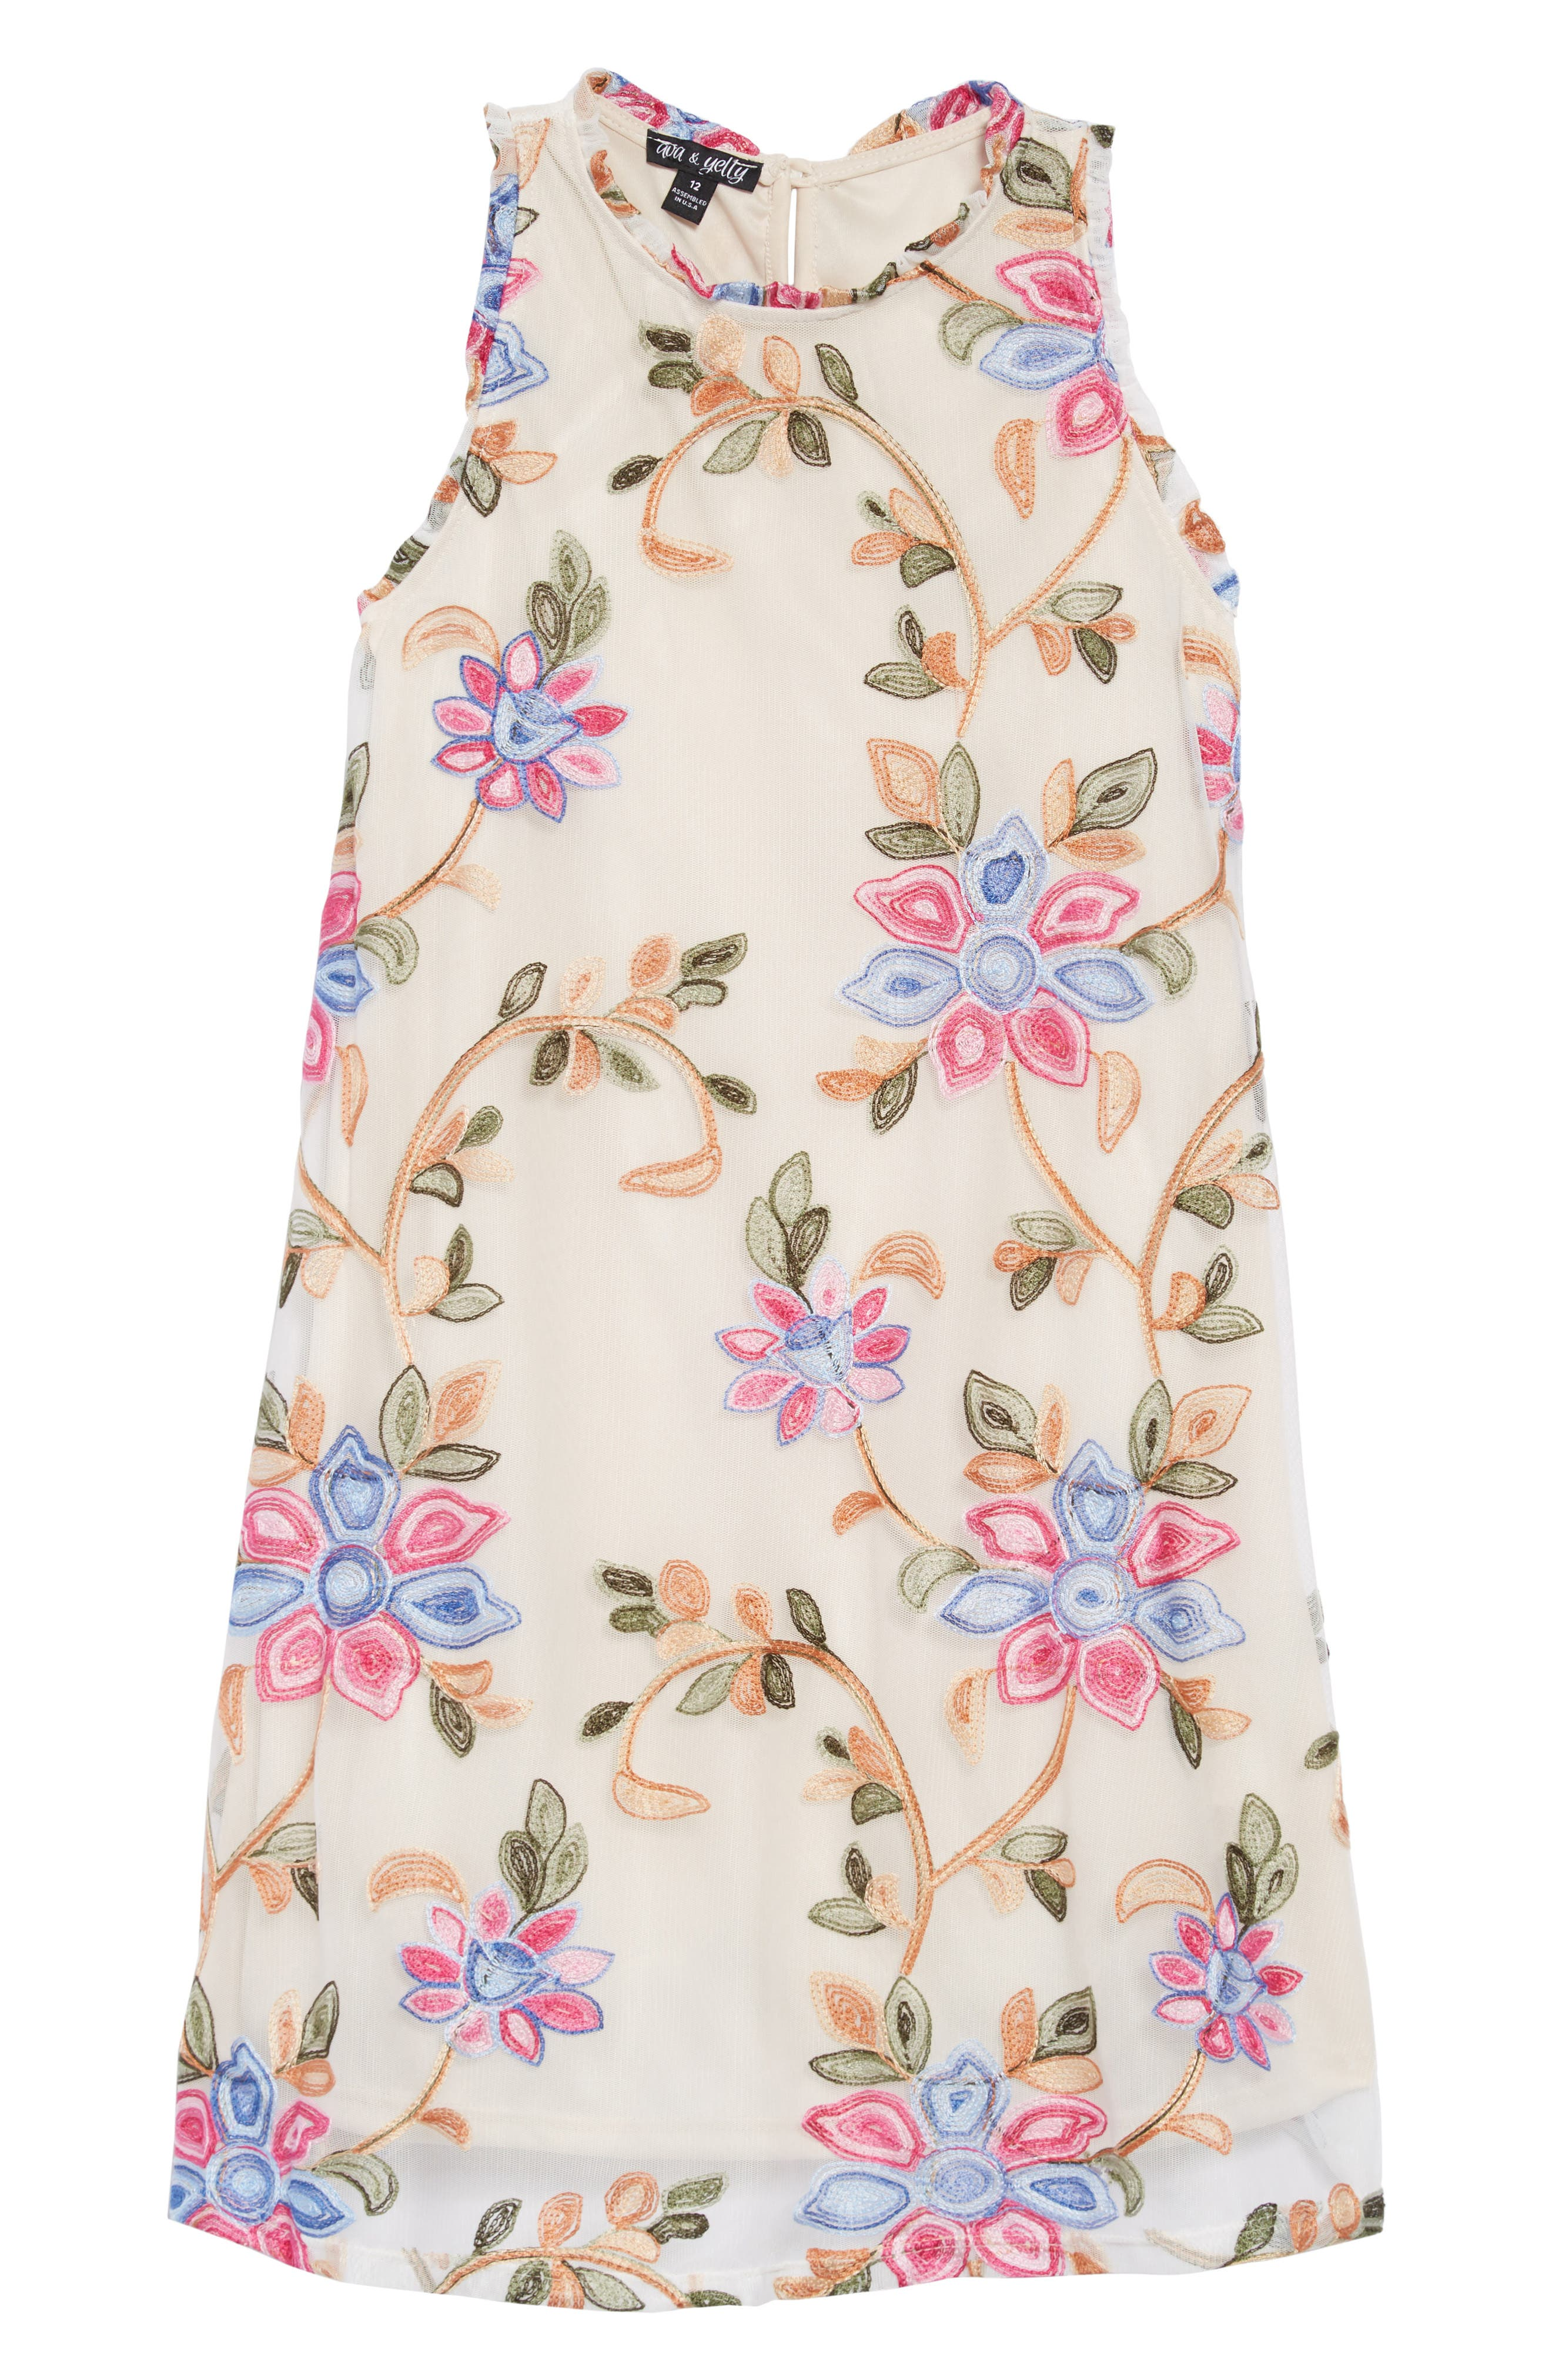 Floral Embroidered Shift Dress,                         Main,                         color, 400